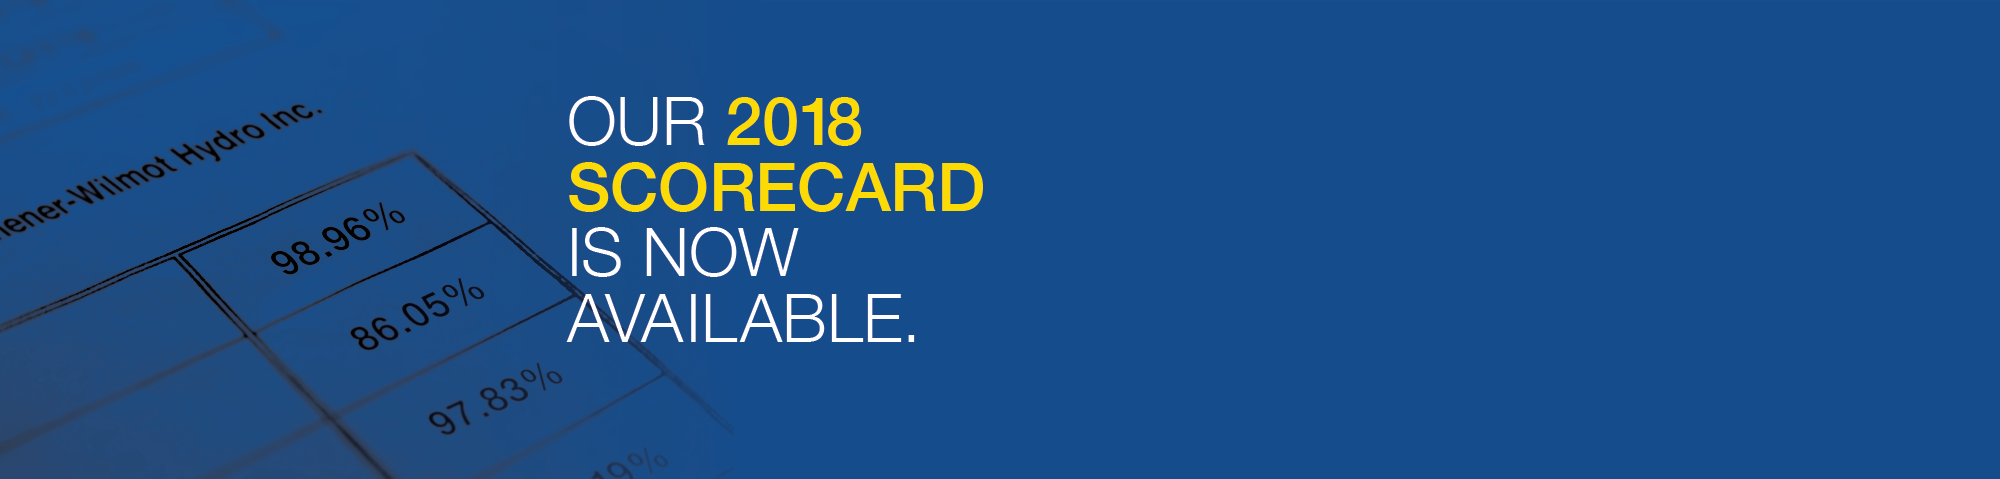 Web banner for KWHI's 2018 Scorecard